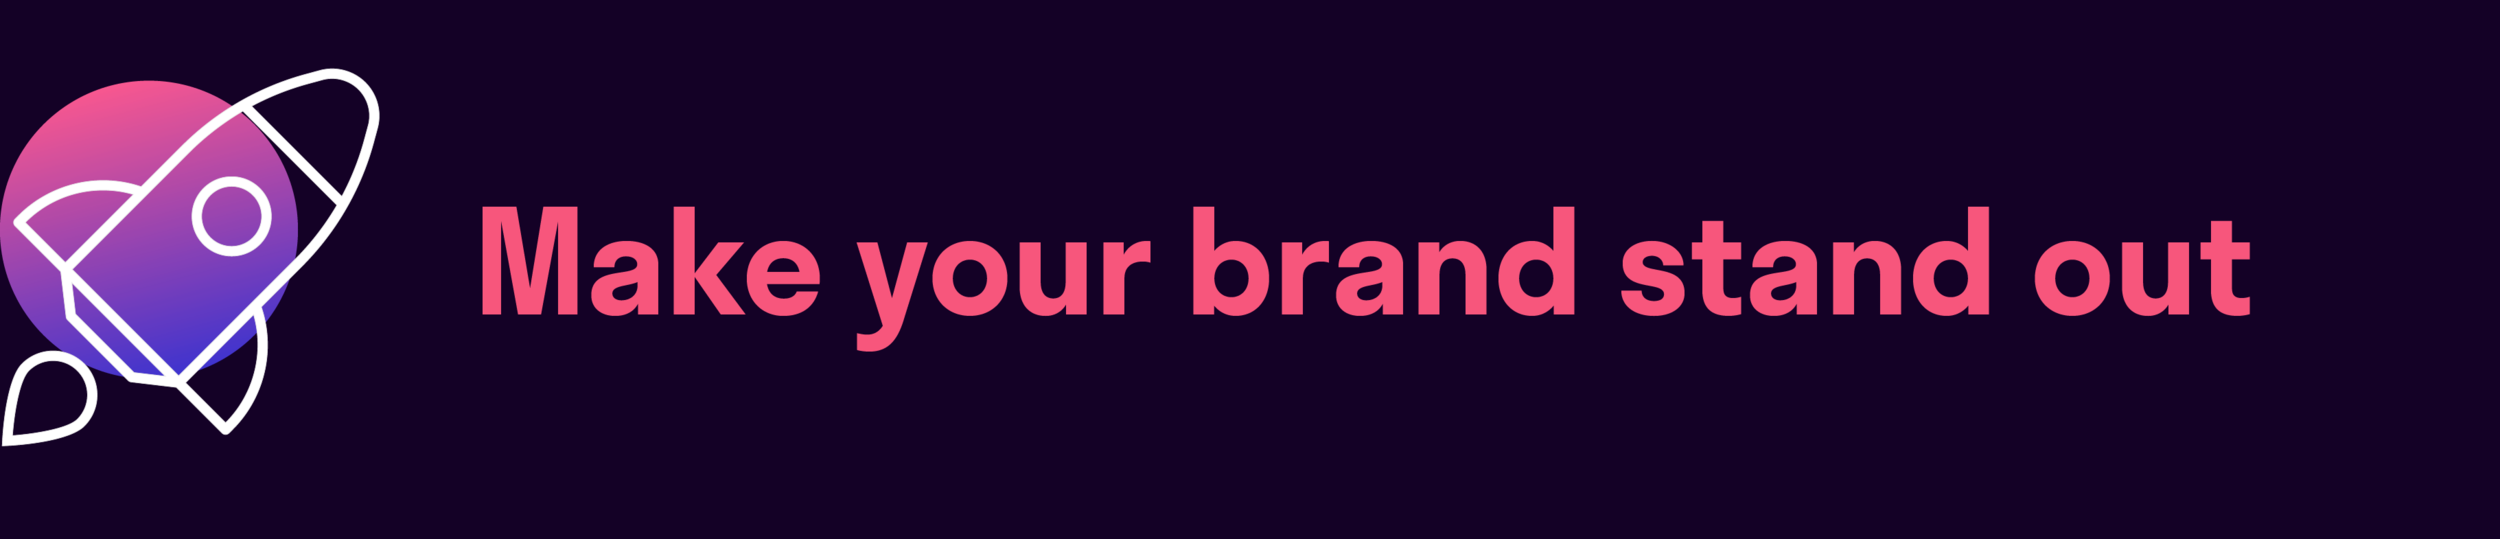 make your brand stand out.png